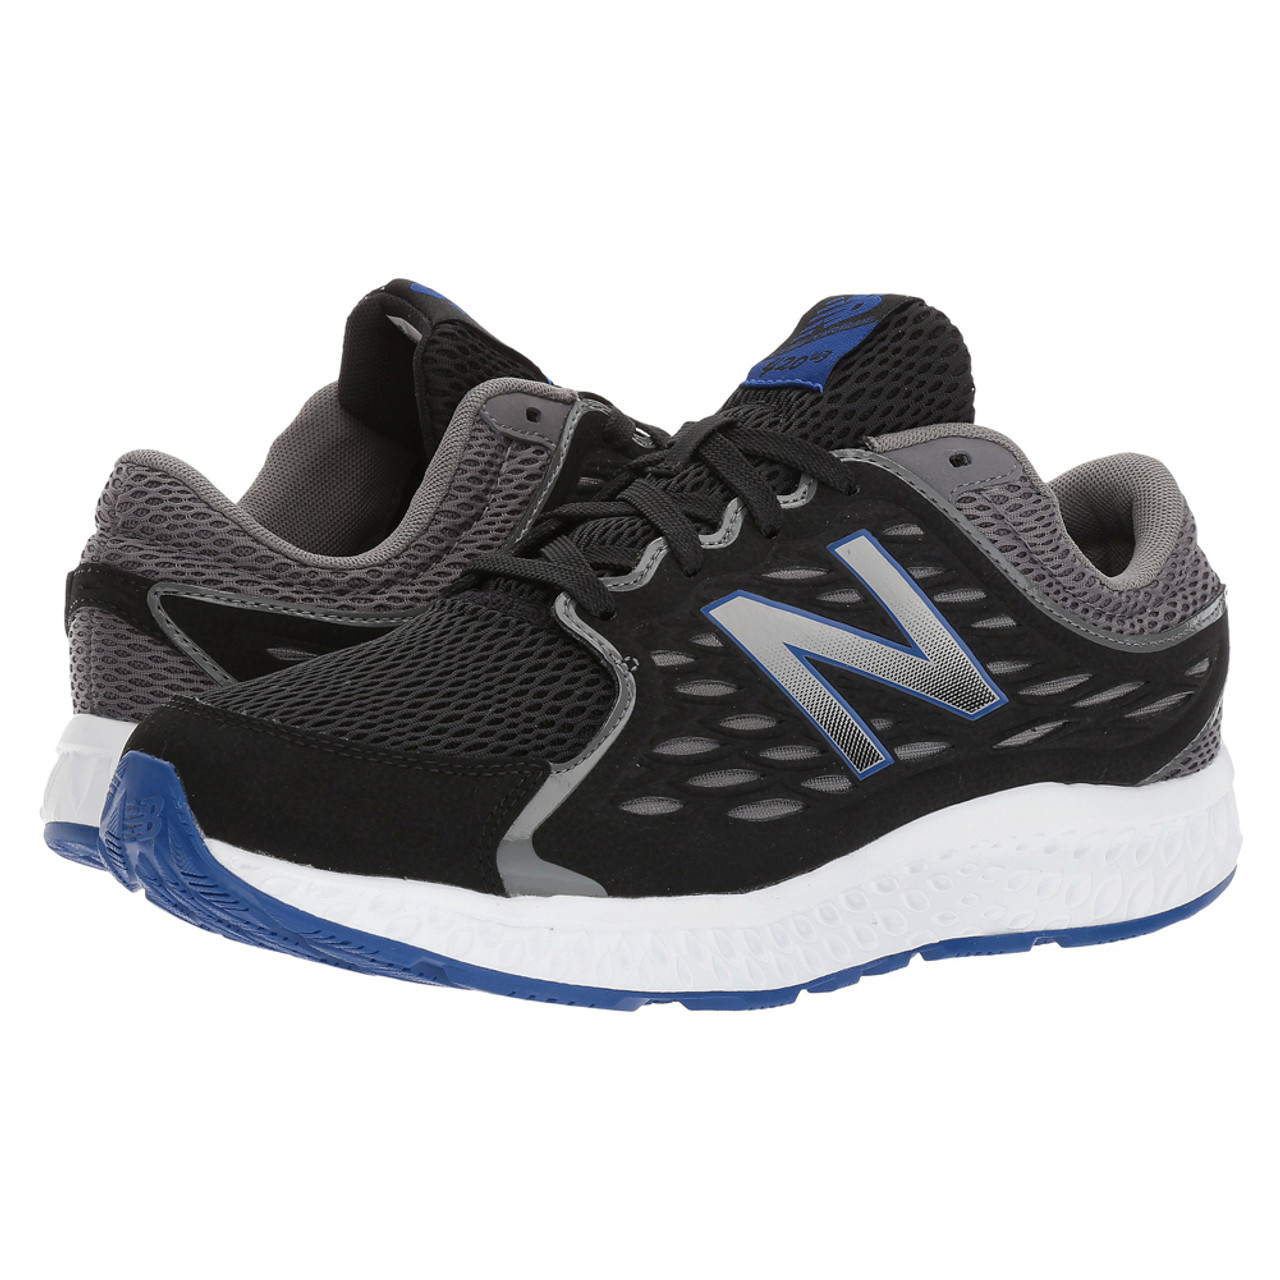 pas mal 1ec94 5a111 New Balance Men's M420CG3 Running Shoe Black/Grey